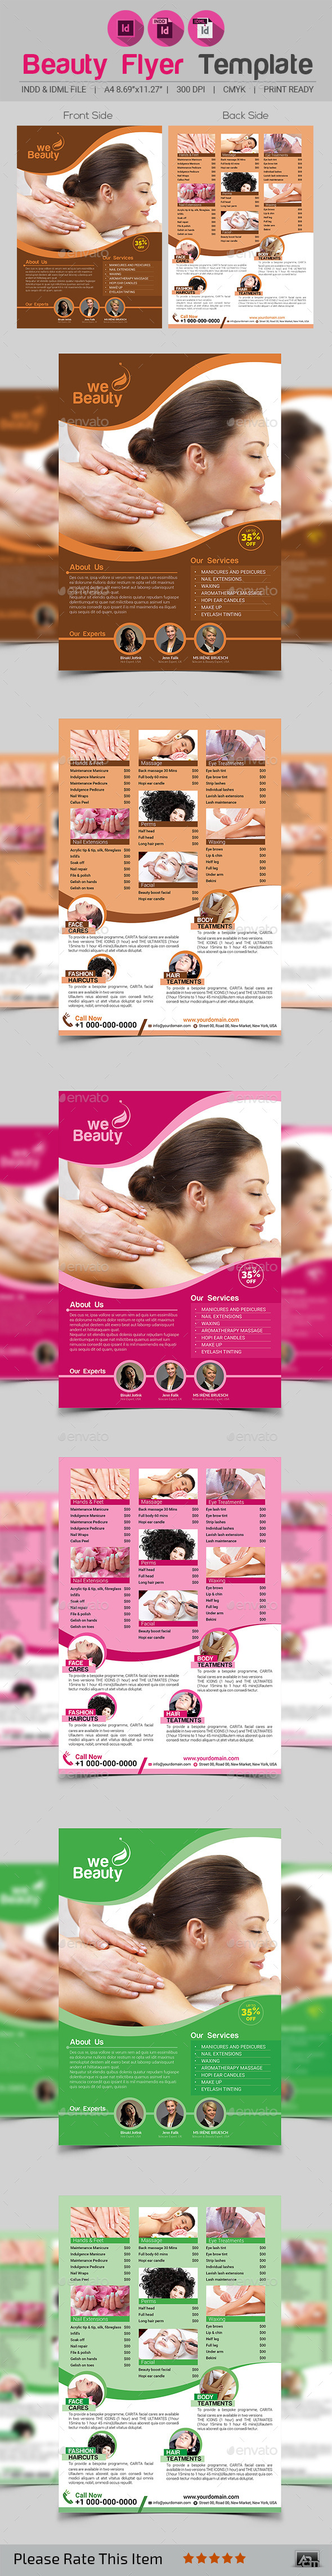 Beauty Flyer Template - Restaurant Flyers